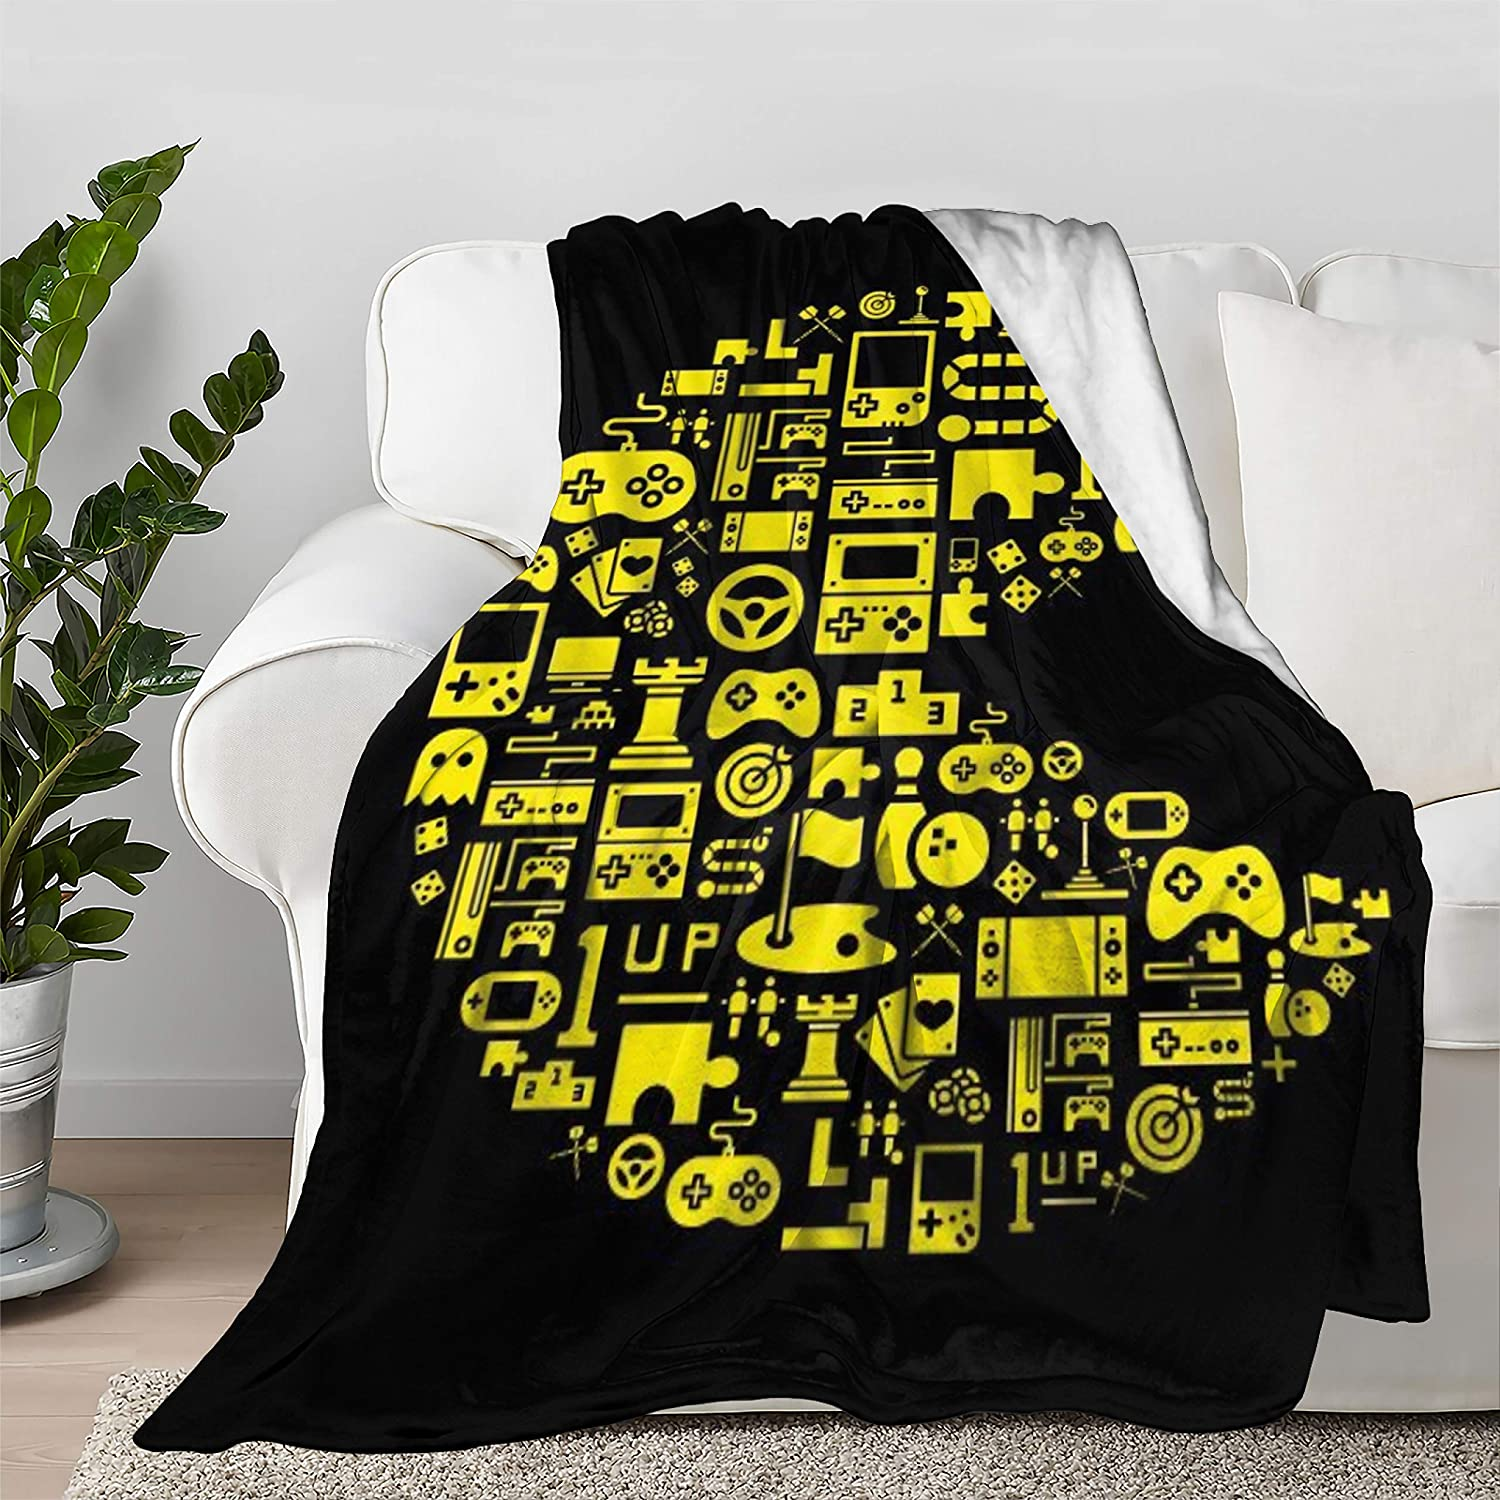 Video Game Decor Retro Throw Tucson Mall Bedspread Blanket Houston Mall Quilt Ult Flannel